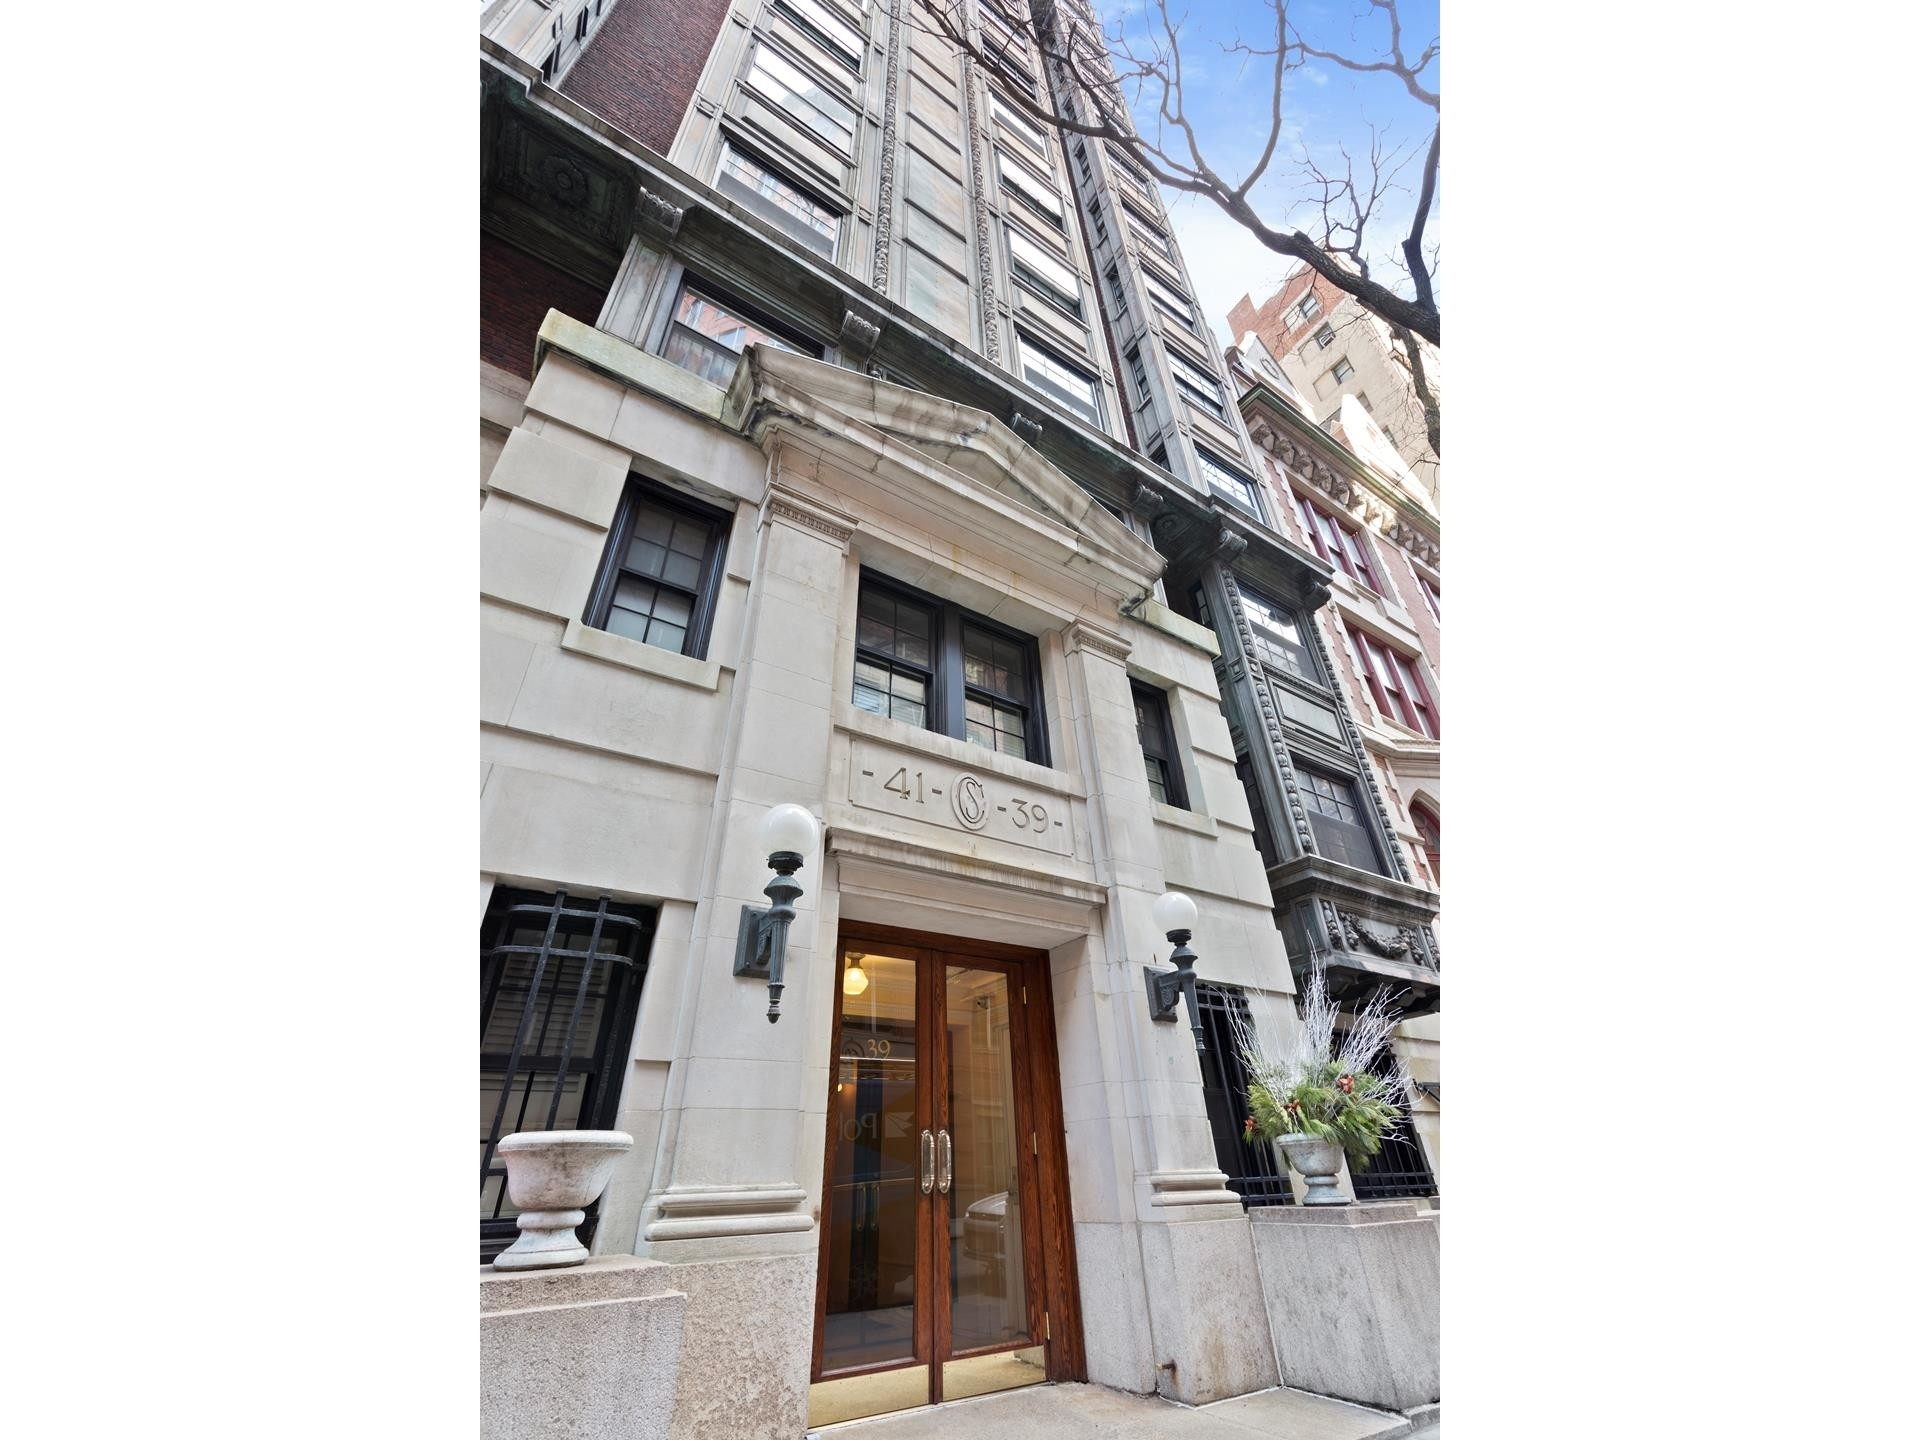 11. Co-op Properties for Sale at Colonial Studios, 39 W 67TH ST , 401402301 Lincoln Square, New York, NY 10023